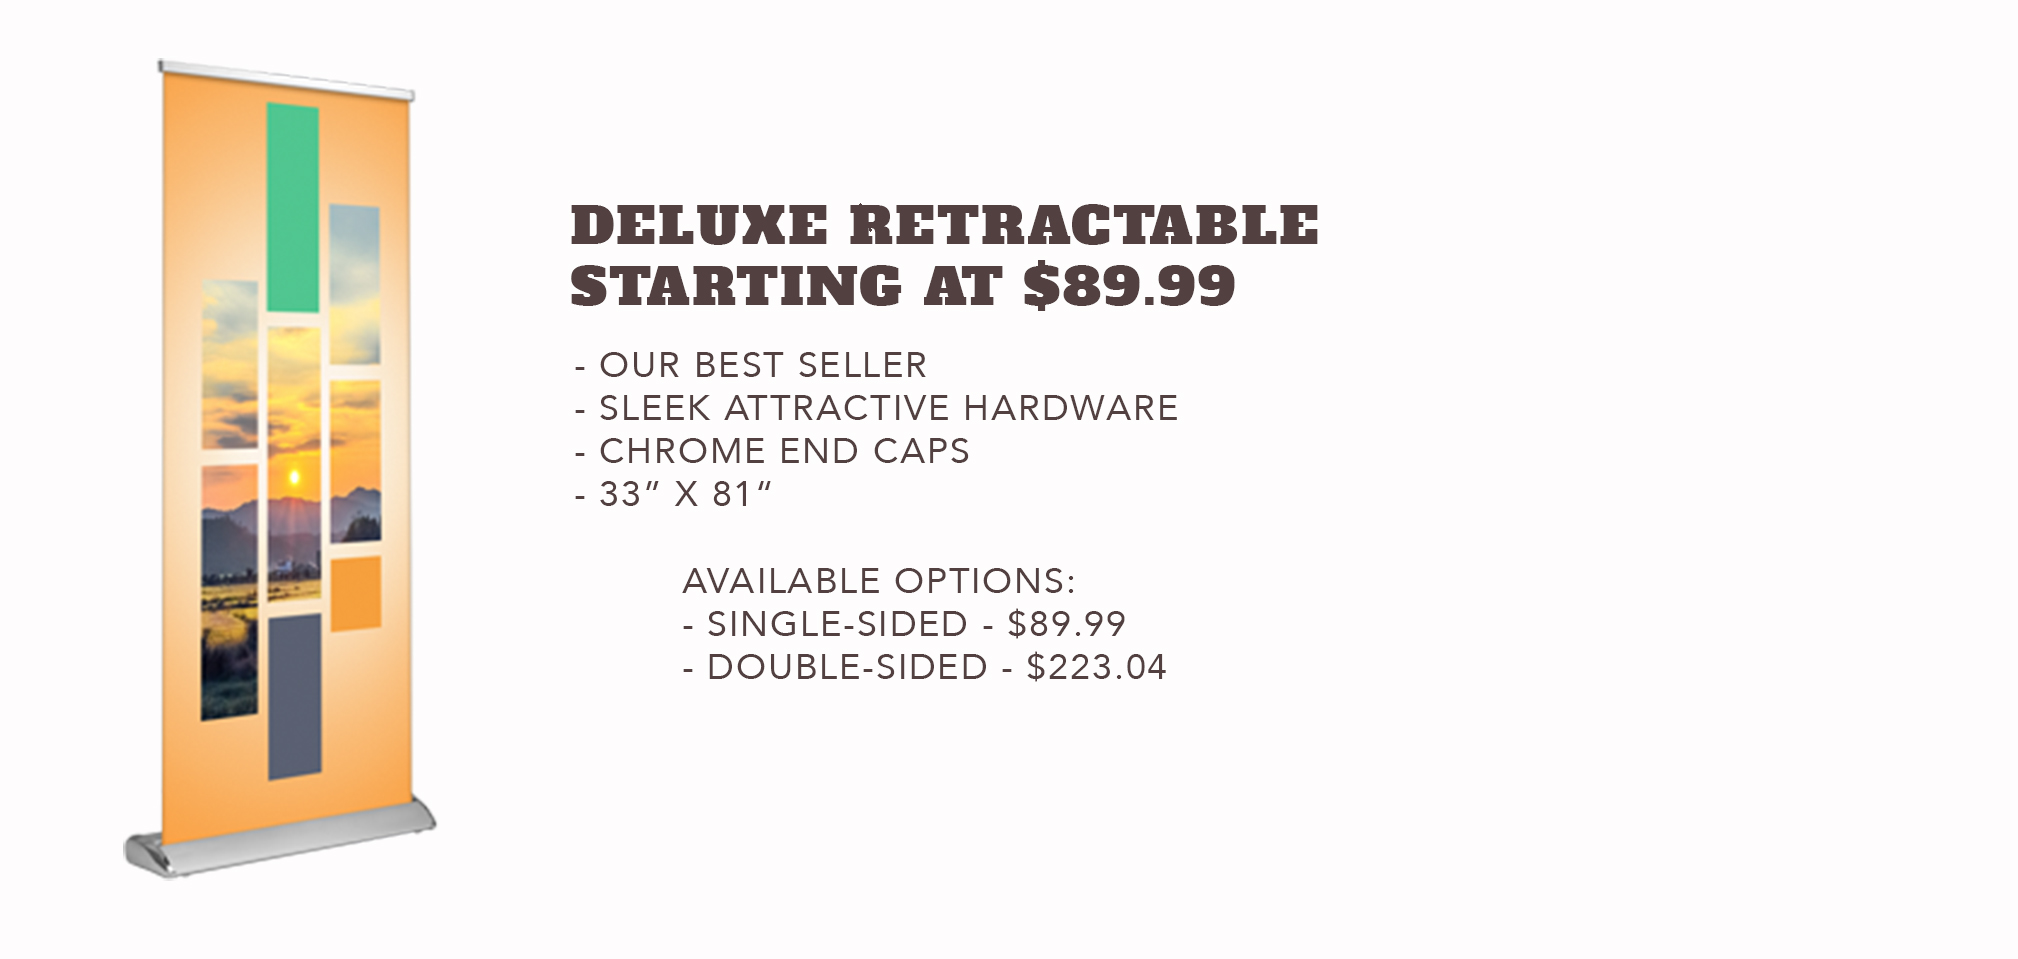 Deluxe Retractable Banner - Staring at $89.99